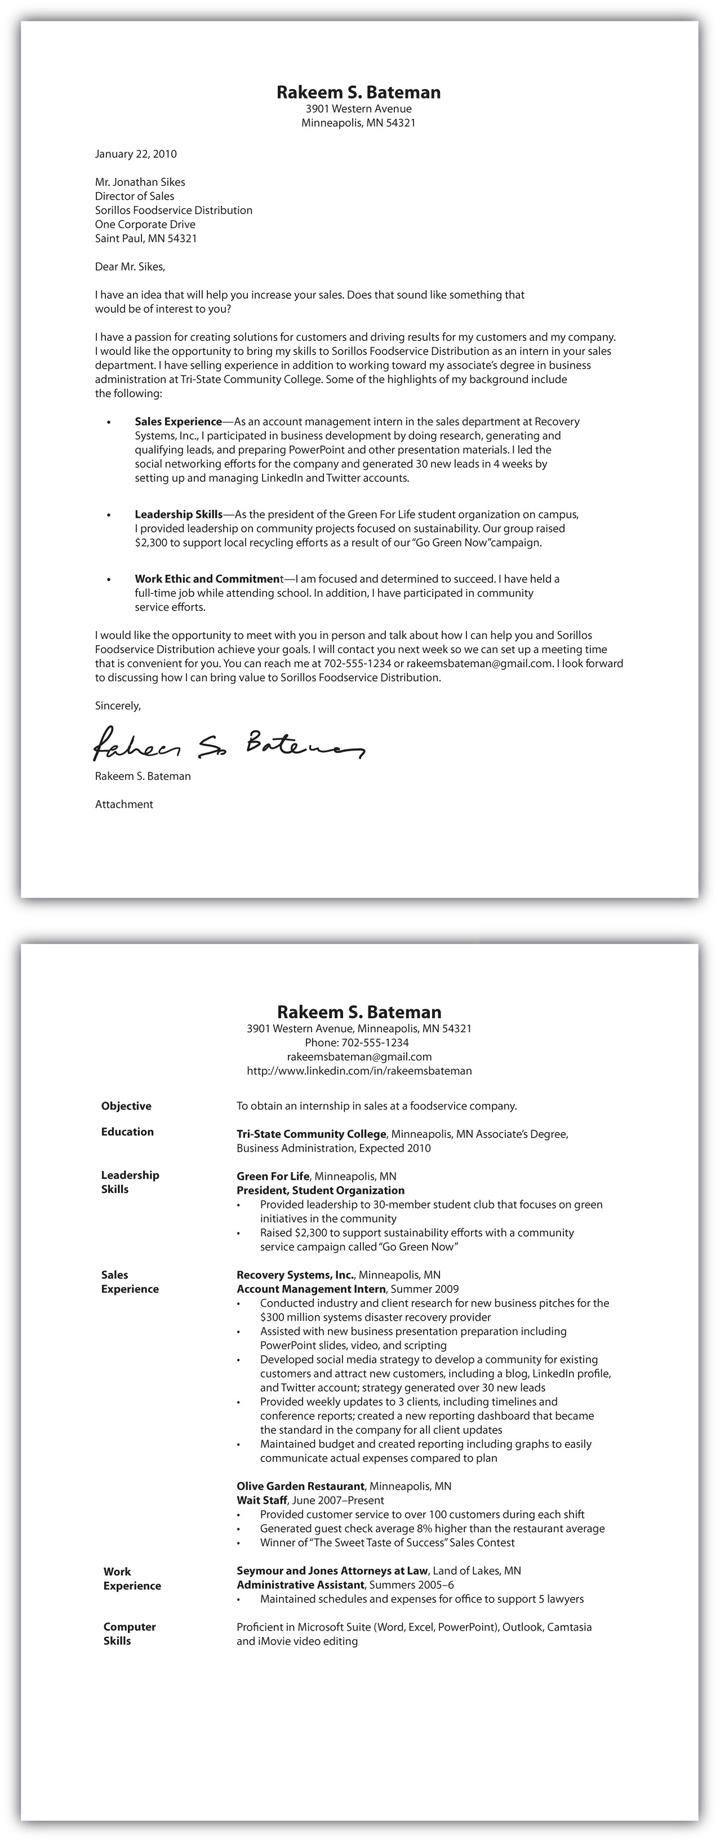 Cover Letter Cover Letter For Banking Position Cover Letter For